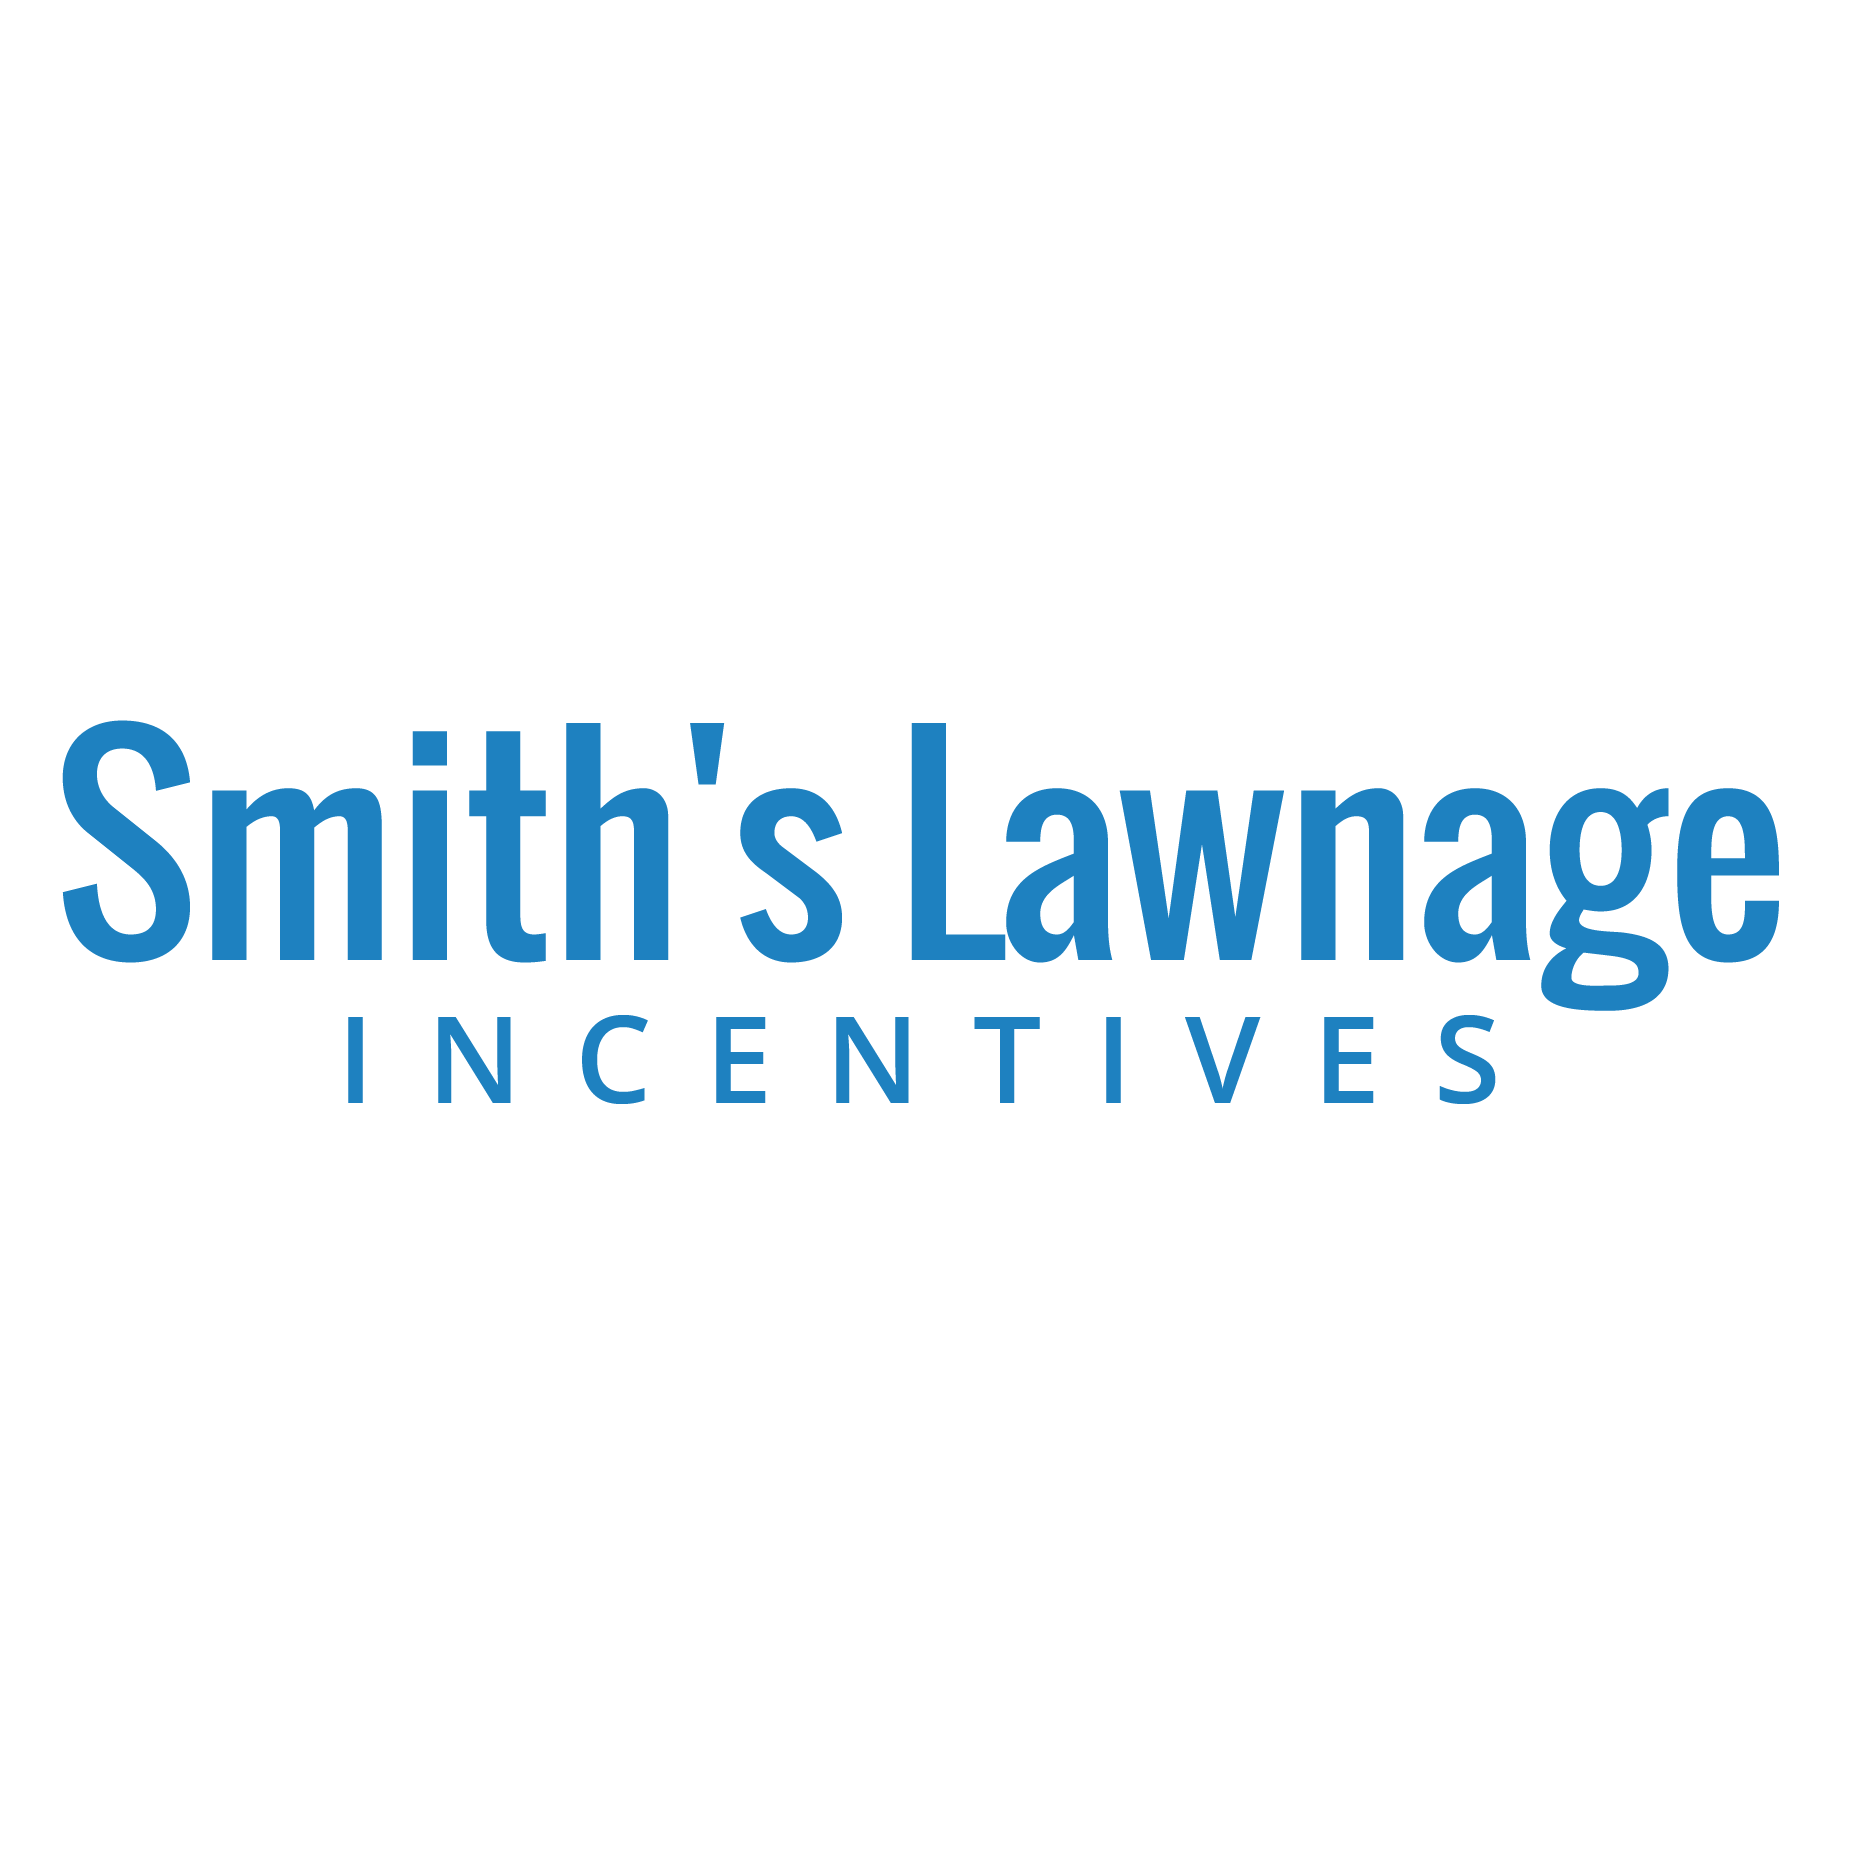 Smith's Lawnage Incentives